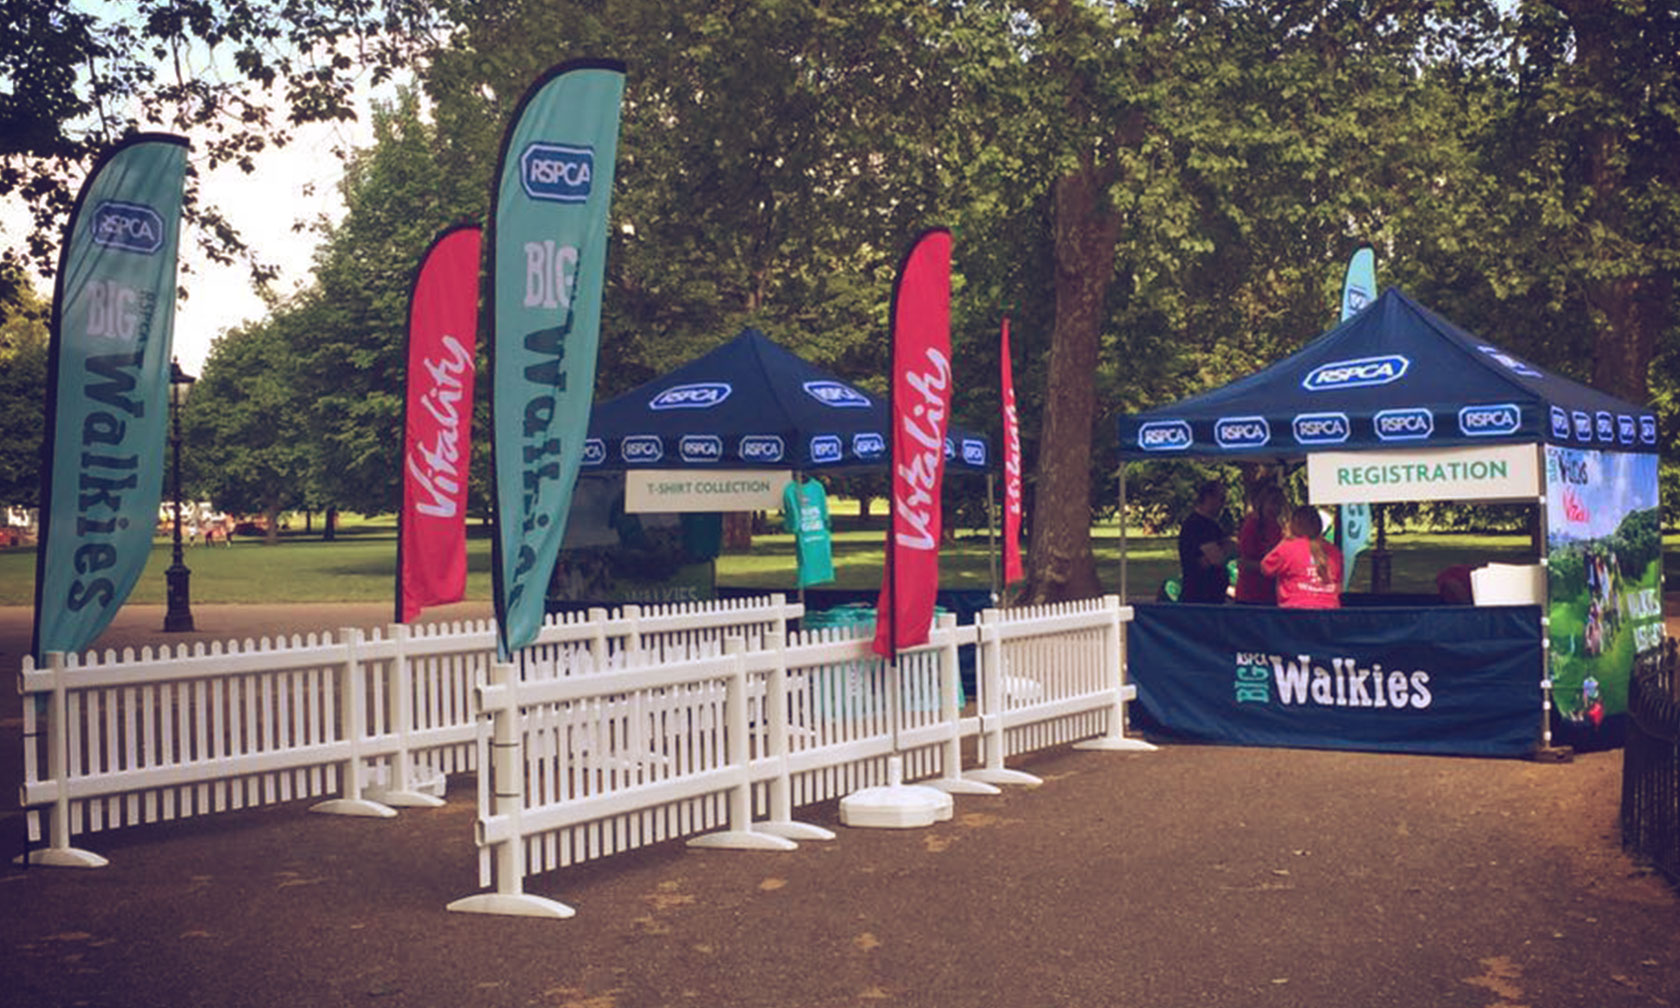 RSPCA flags and gazebos big walkies